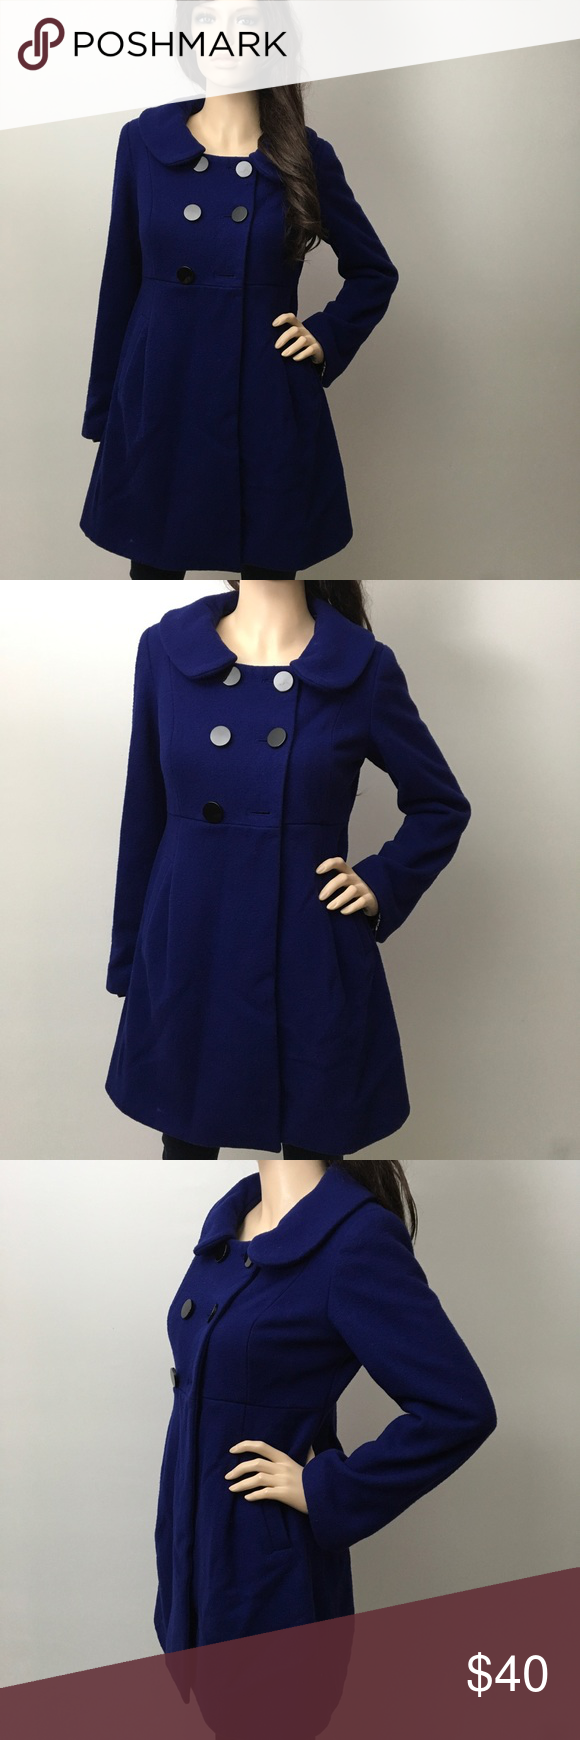 Adorable Double Breasted  Modern Dress Coat 💋 Other than that missing button this coat is in great condition. I do have the button so if your good at sewing you can reattach it. 😄 Sequin Hearts Jackets & Coats